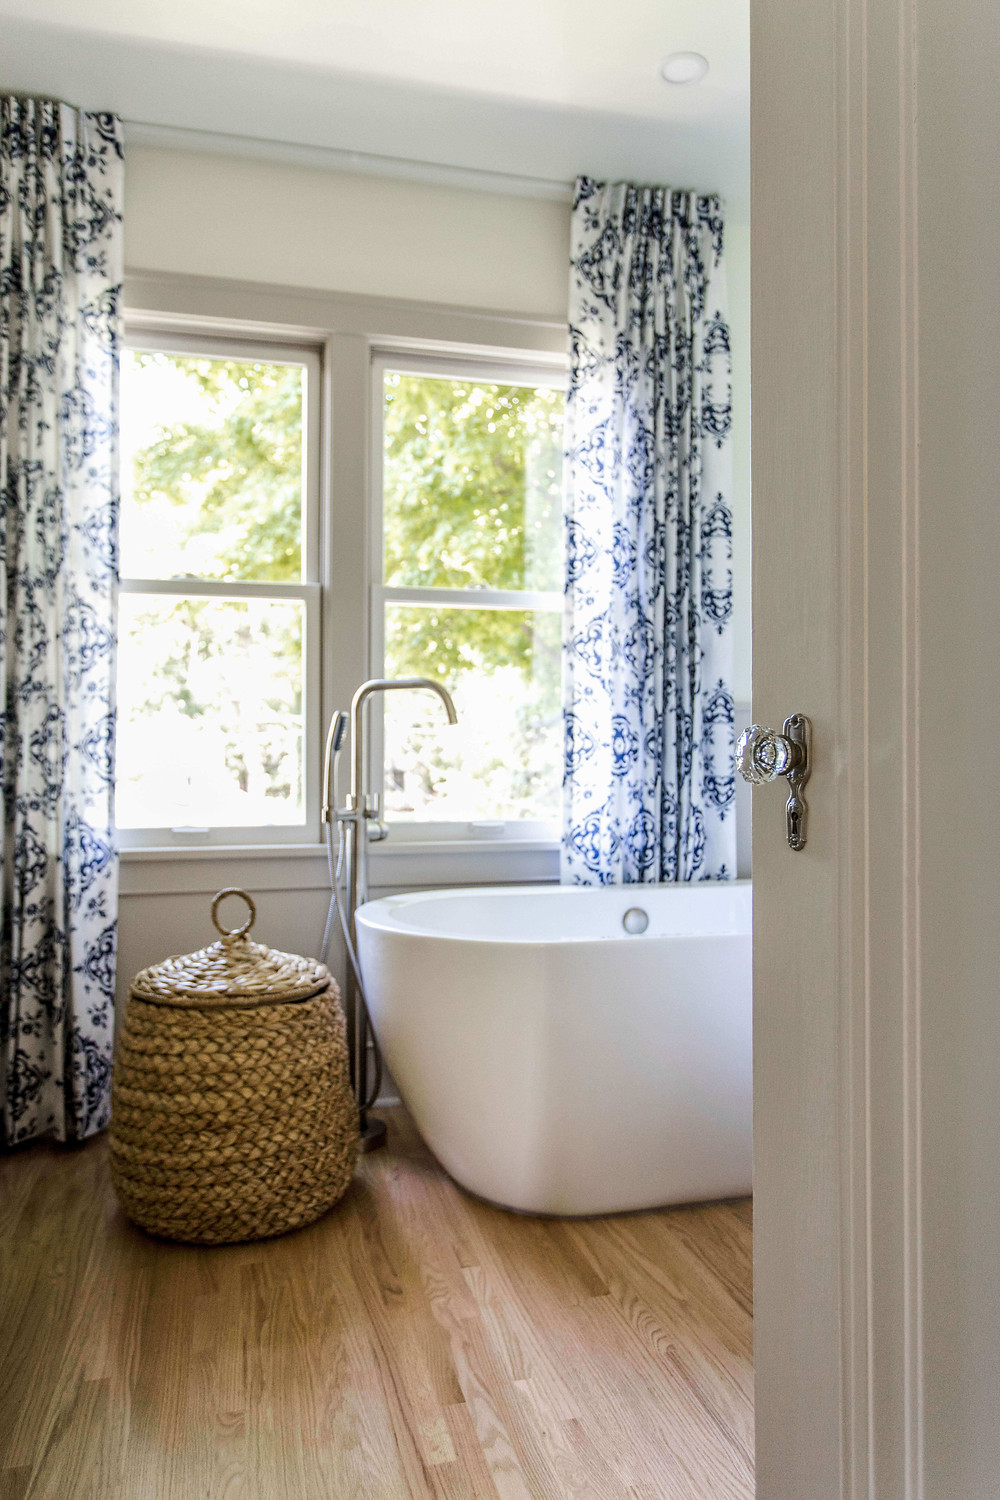 7 Easy Ways to Add Color to Your Renovation